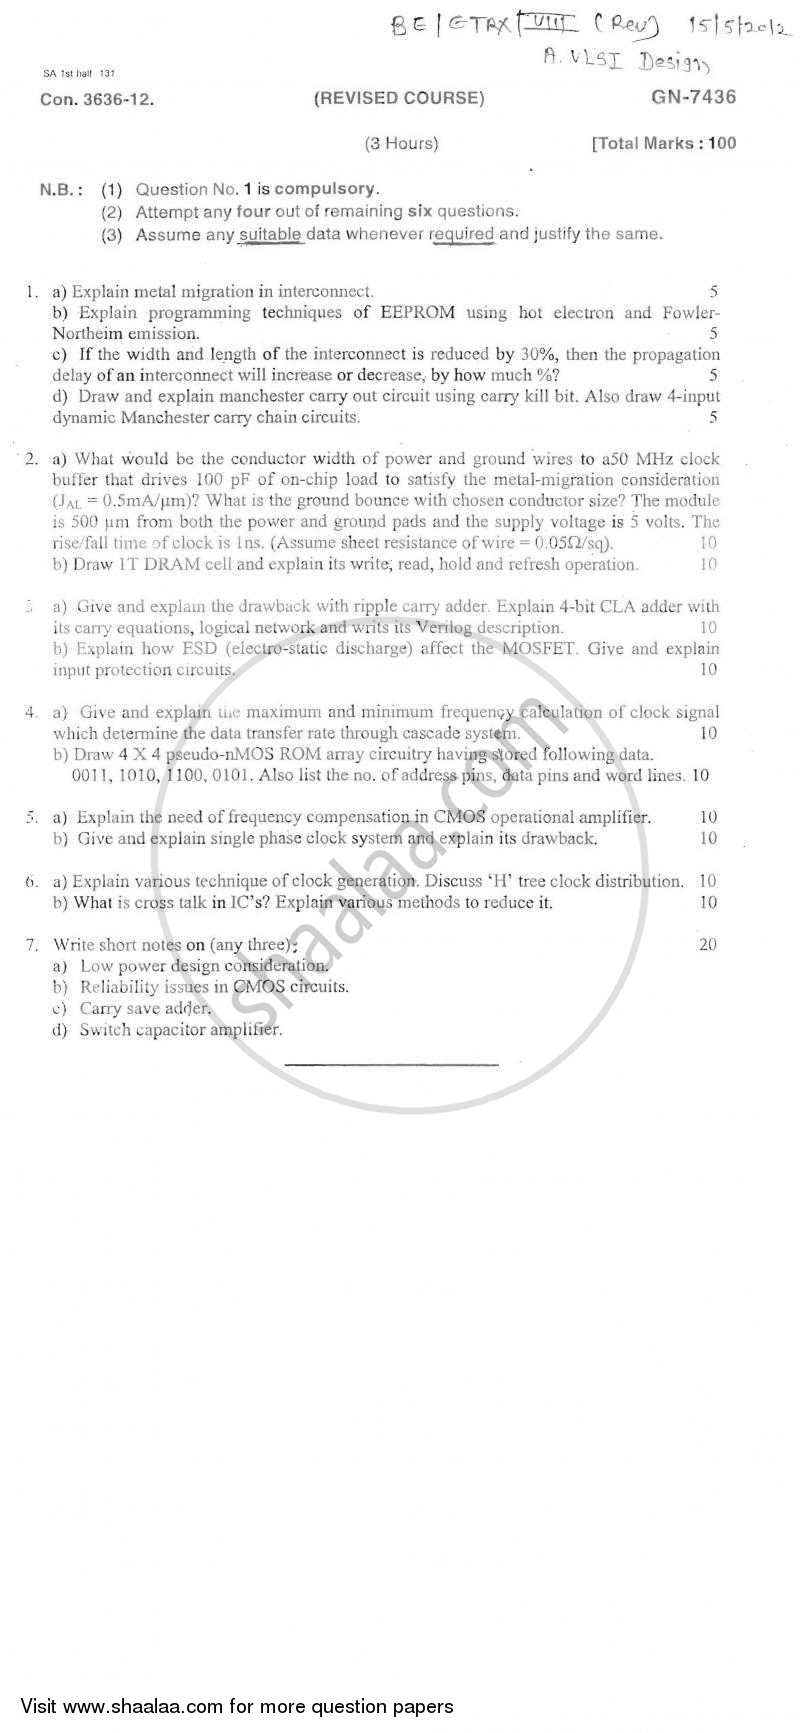 Question Paper - Advance Vlsi Design 2011 - 2012 - B.E. - Semester 8 (BE Fourth Year) - University of Mumbai